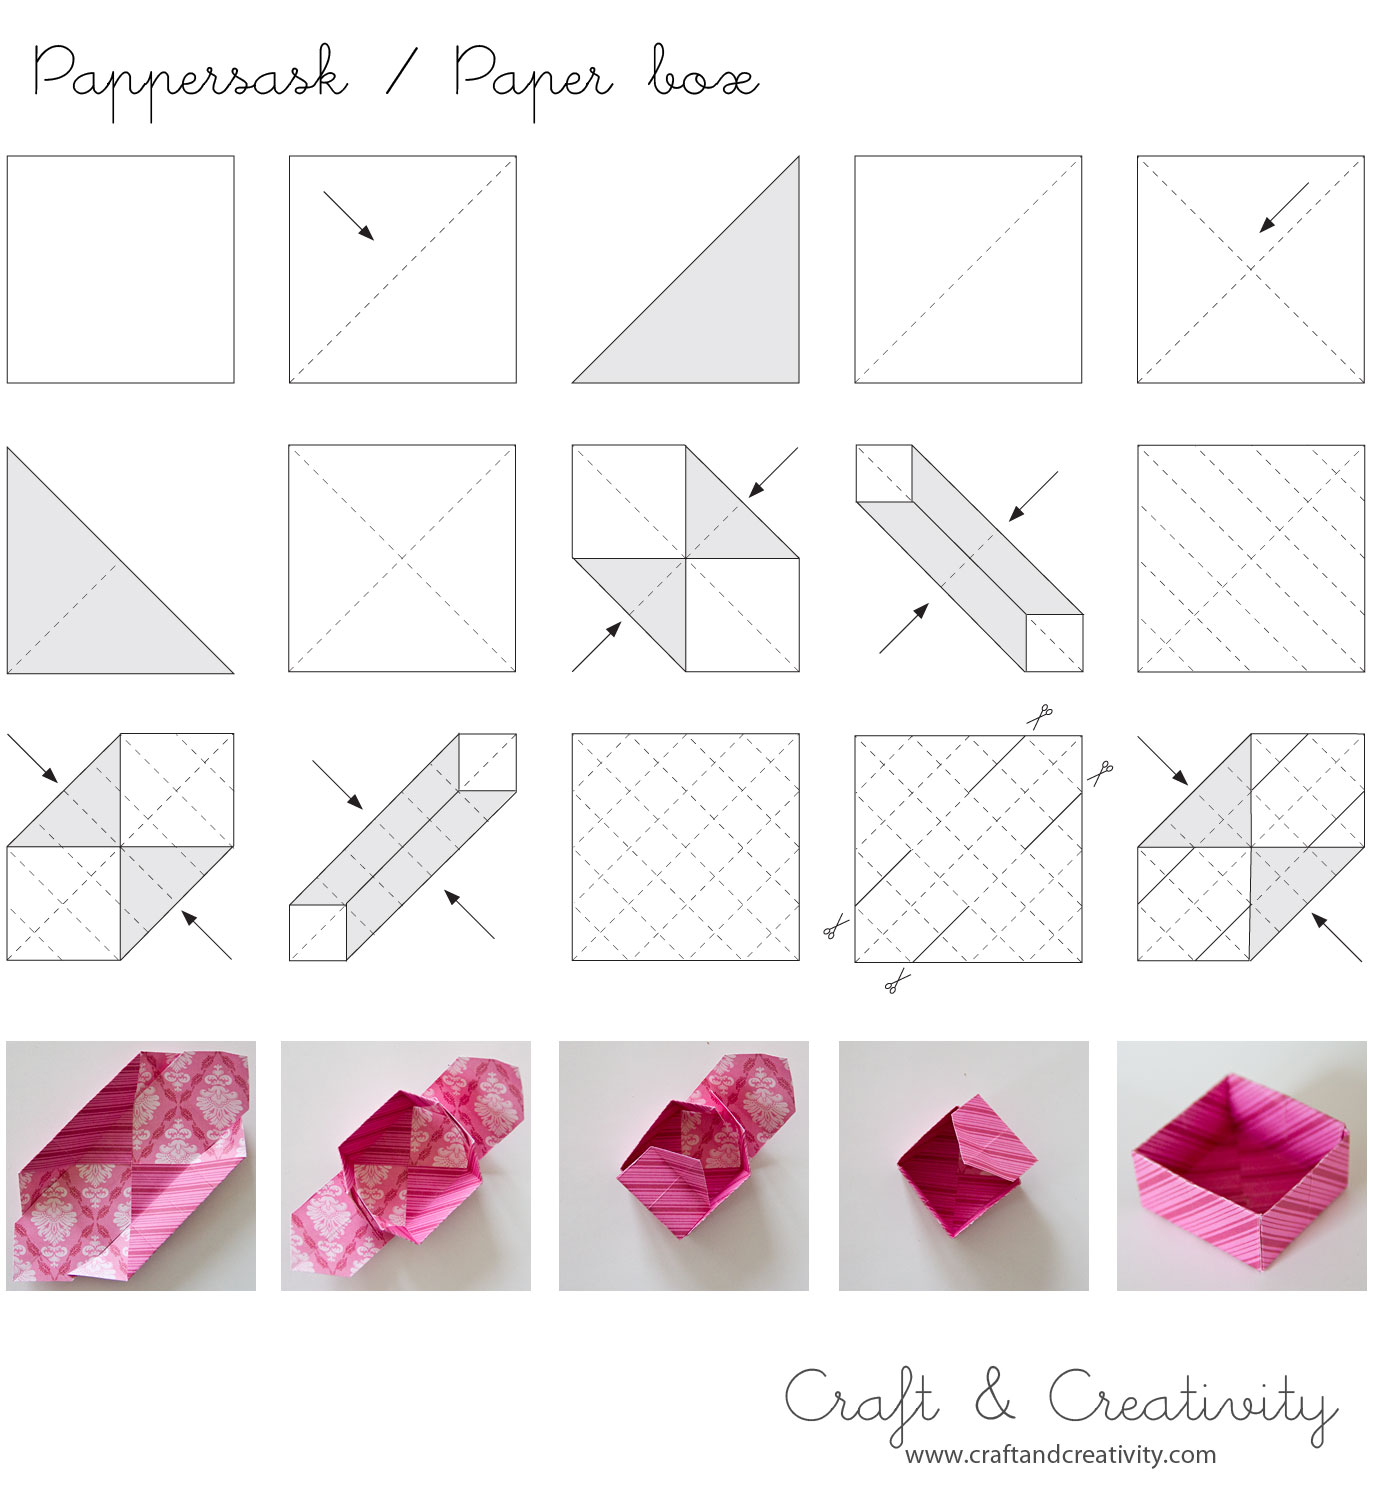 Diy origami paper box diy pinterest for Diy paper origami